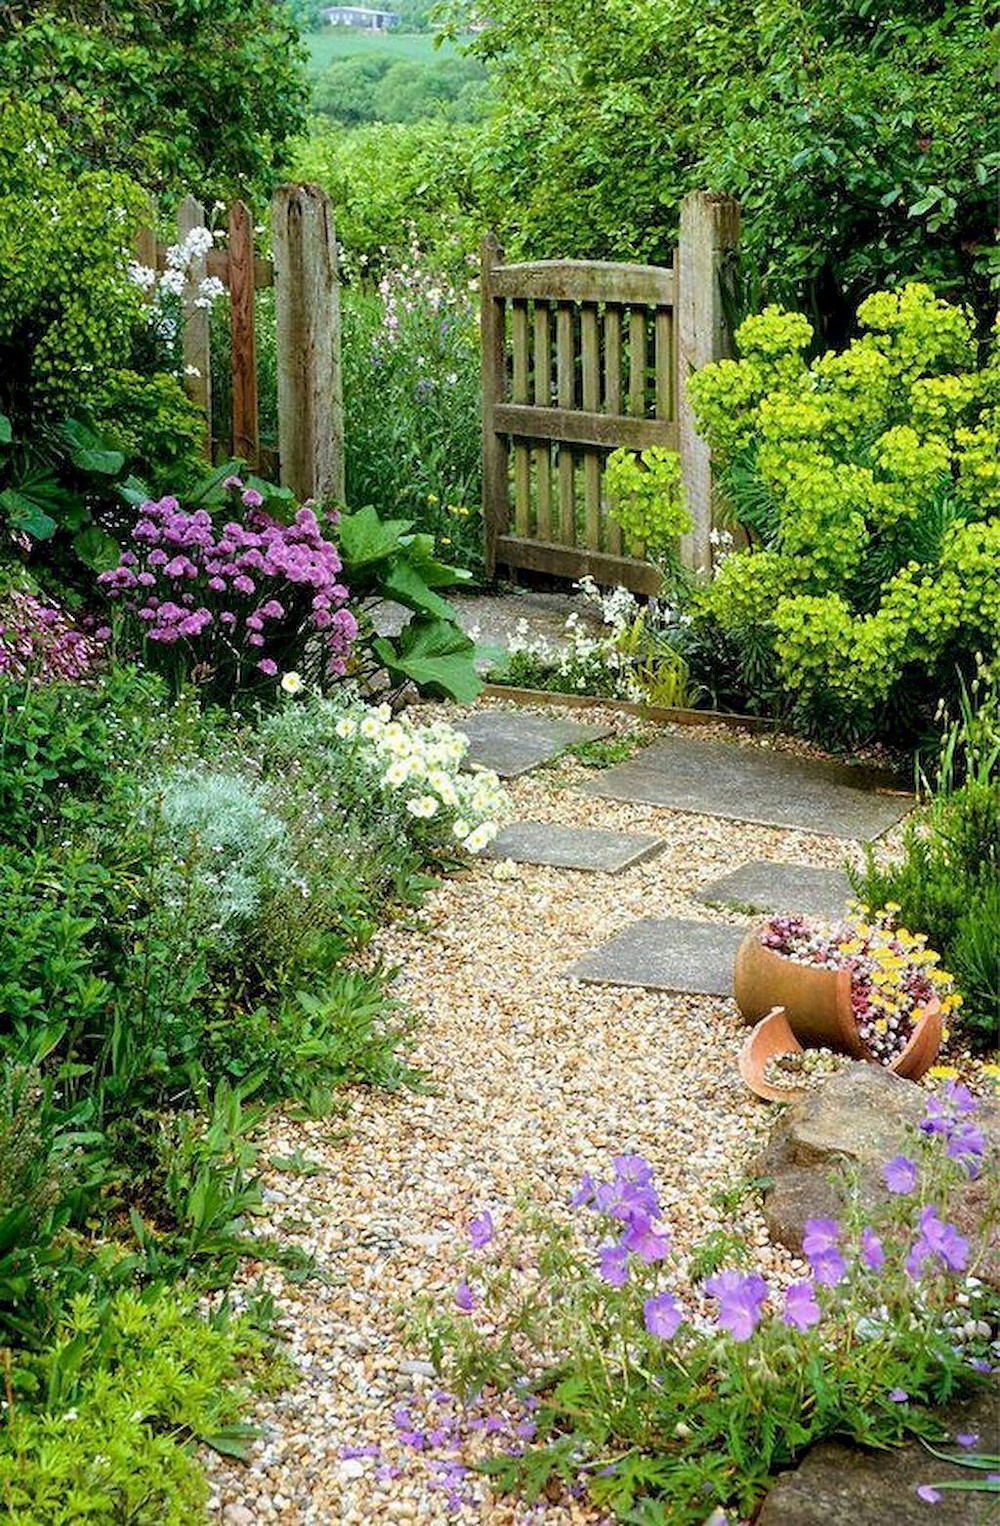 Traditional cottage garden with an open wooden gate, gravel path and flower bedsgate